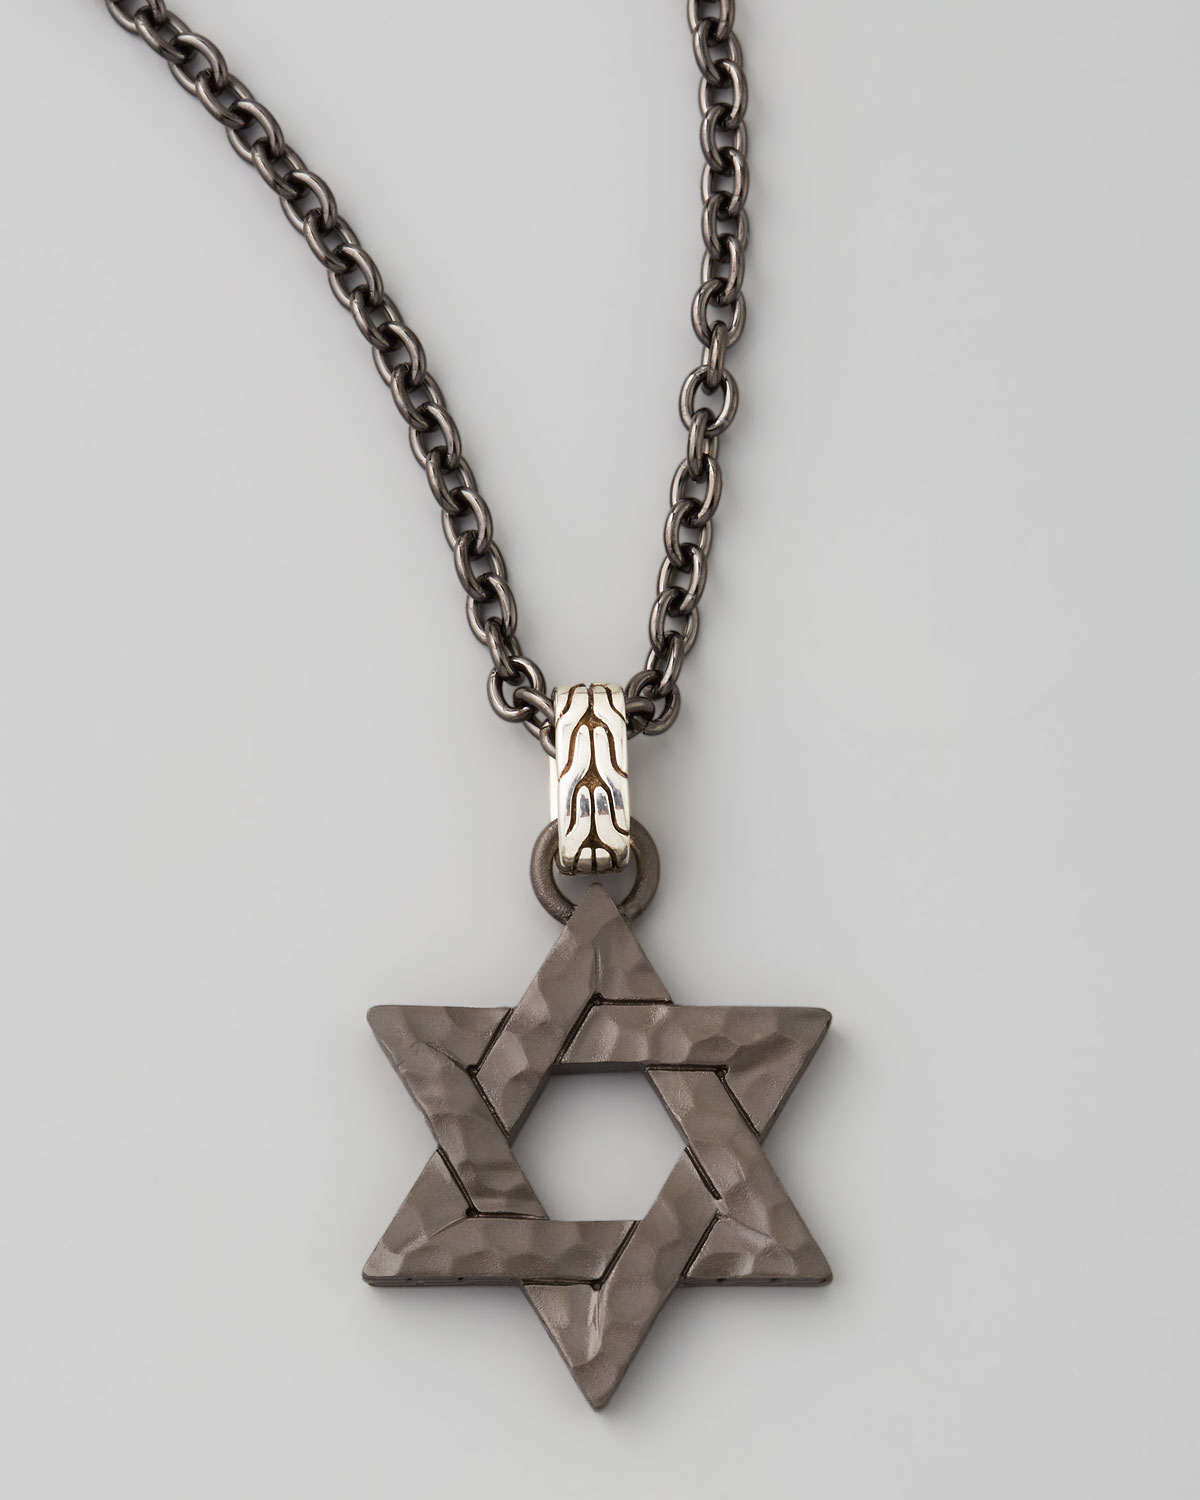 Lyst john hardy blackened star of david necklace in black for John hardy jewelry factory bali